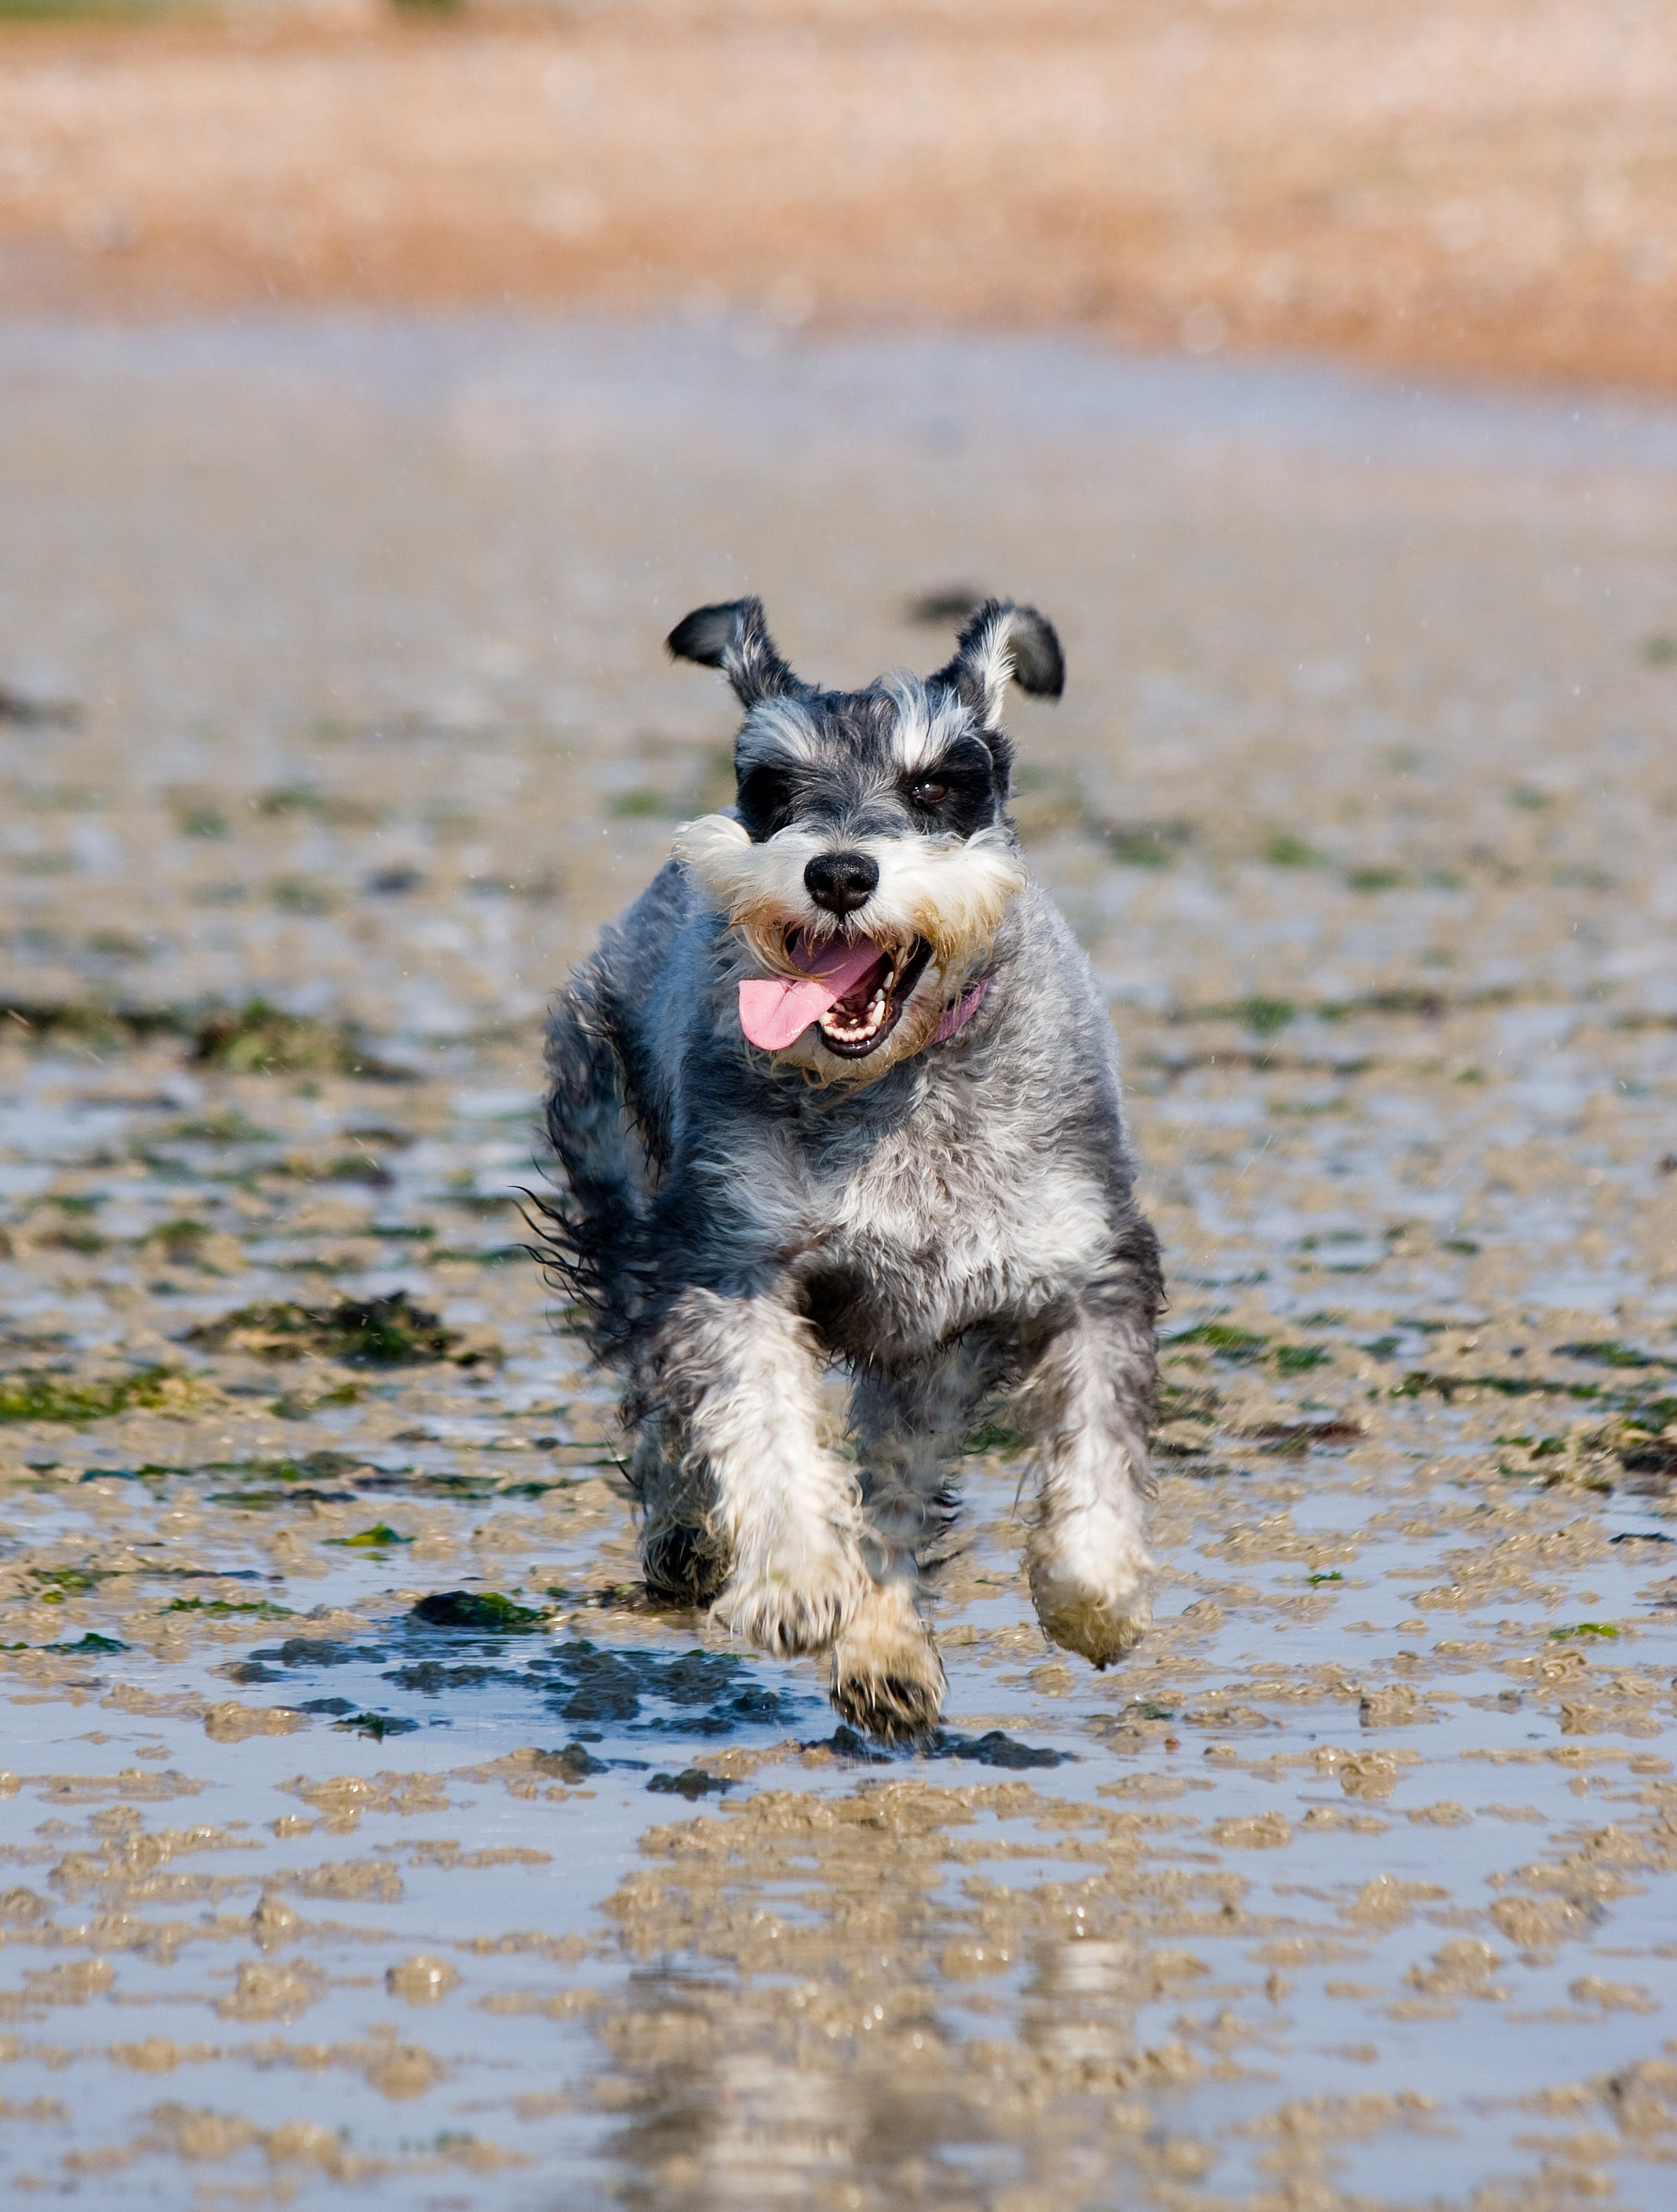 Salt and Pepper Miniature Schnauzer Running on Wet Sand